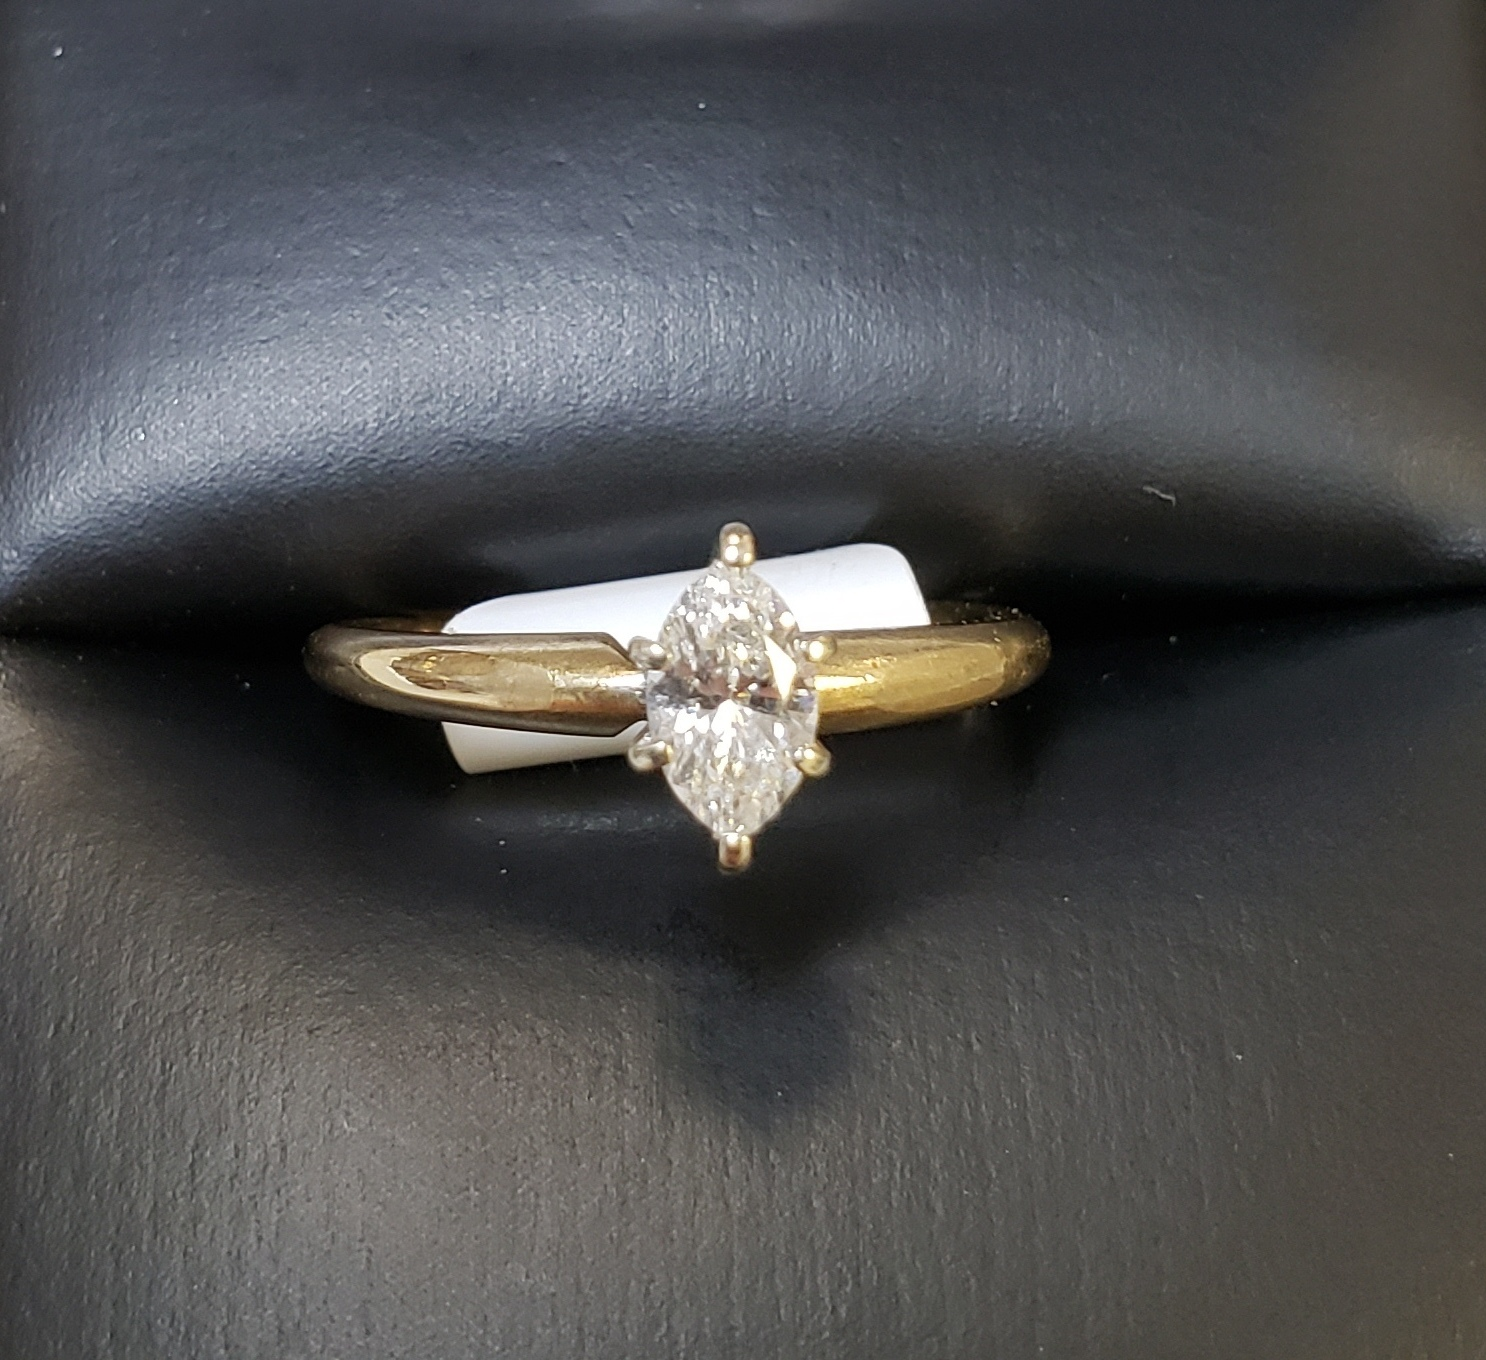 14KT - YELLOW GOLD - SIZE 5 - 3/8 MARQUE CUT SOLITAIRE DIAMOND RING